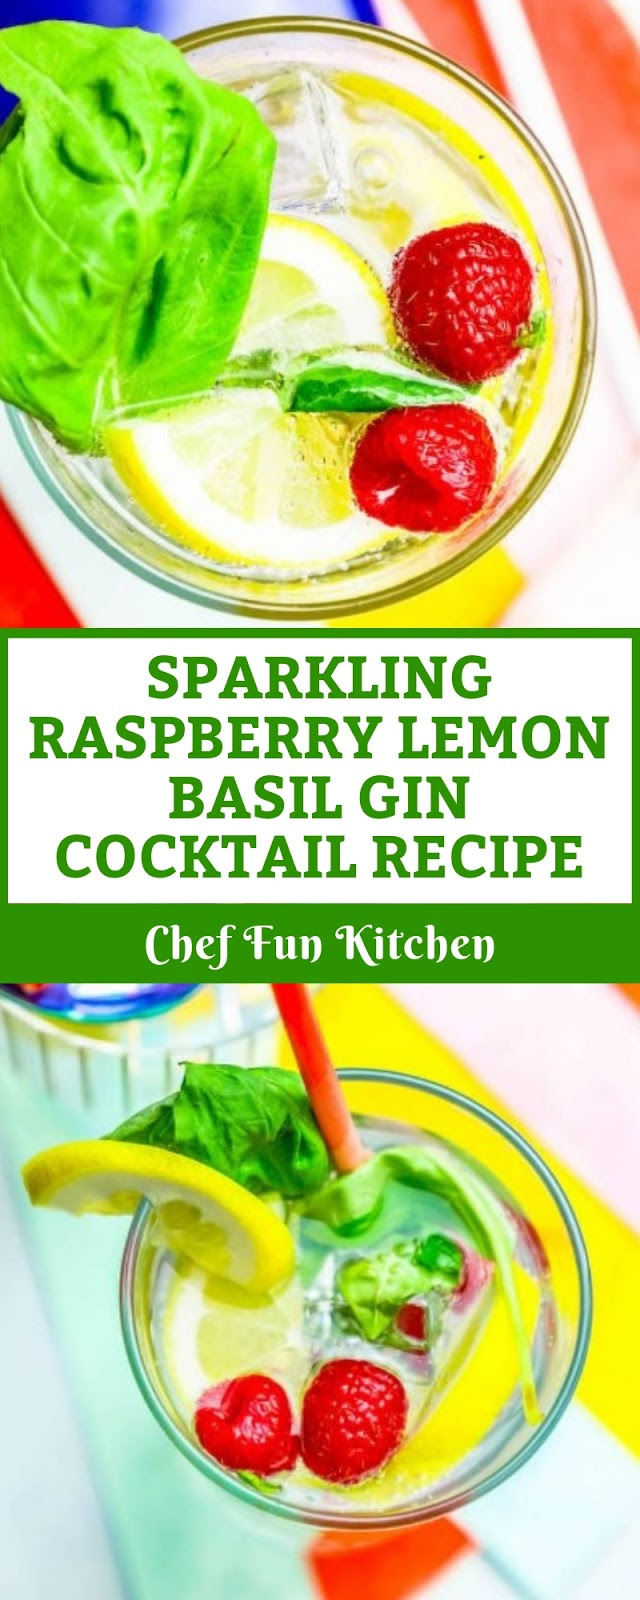 SPARKLING RASPBERRY LEMON BASIL GIN COCKTAIL RECIPE